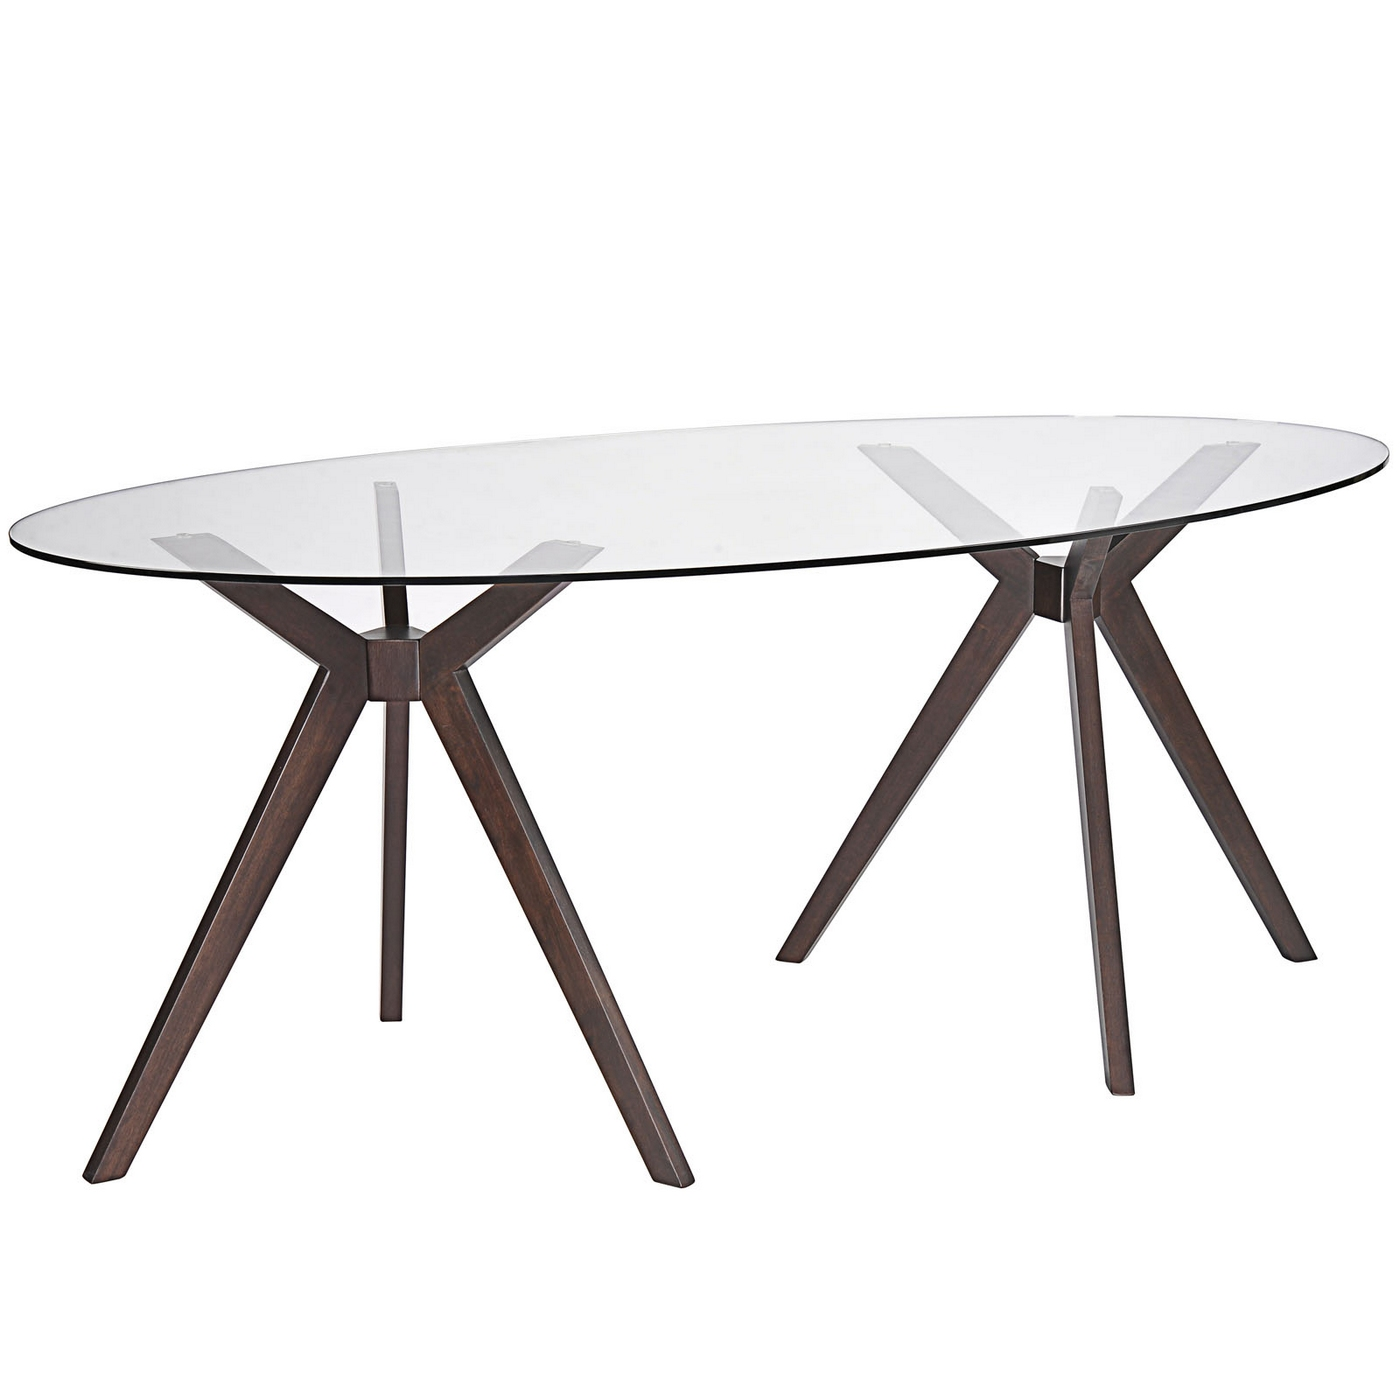 Duet Modern 79 Glass Top Dining Table With Double Tripod Wood Base Walnut